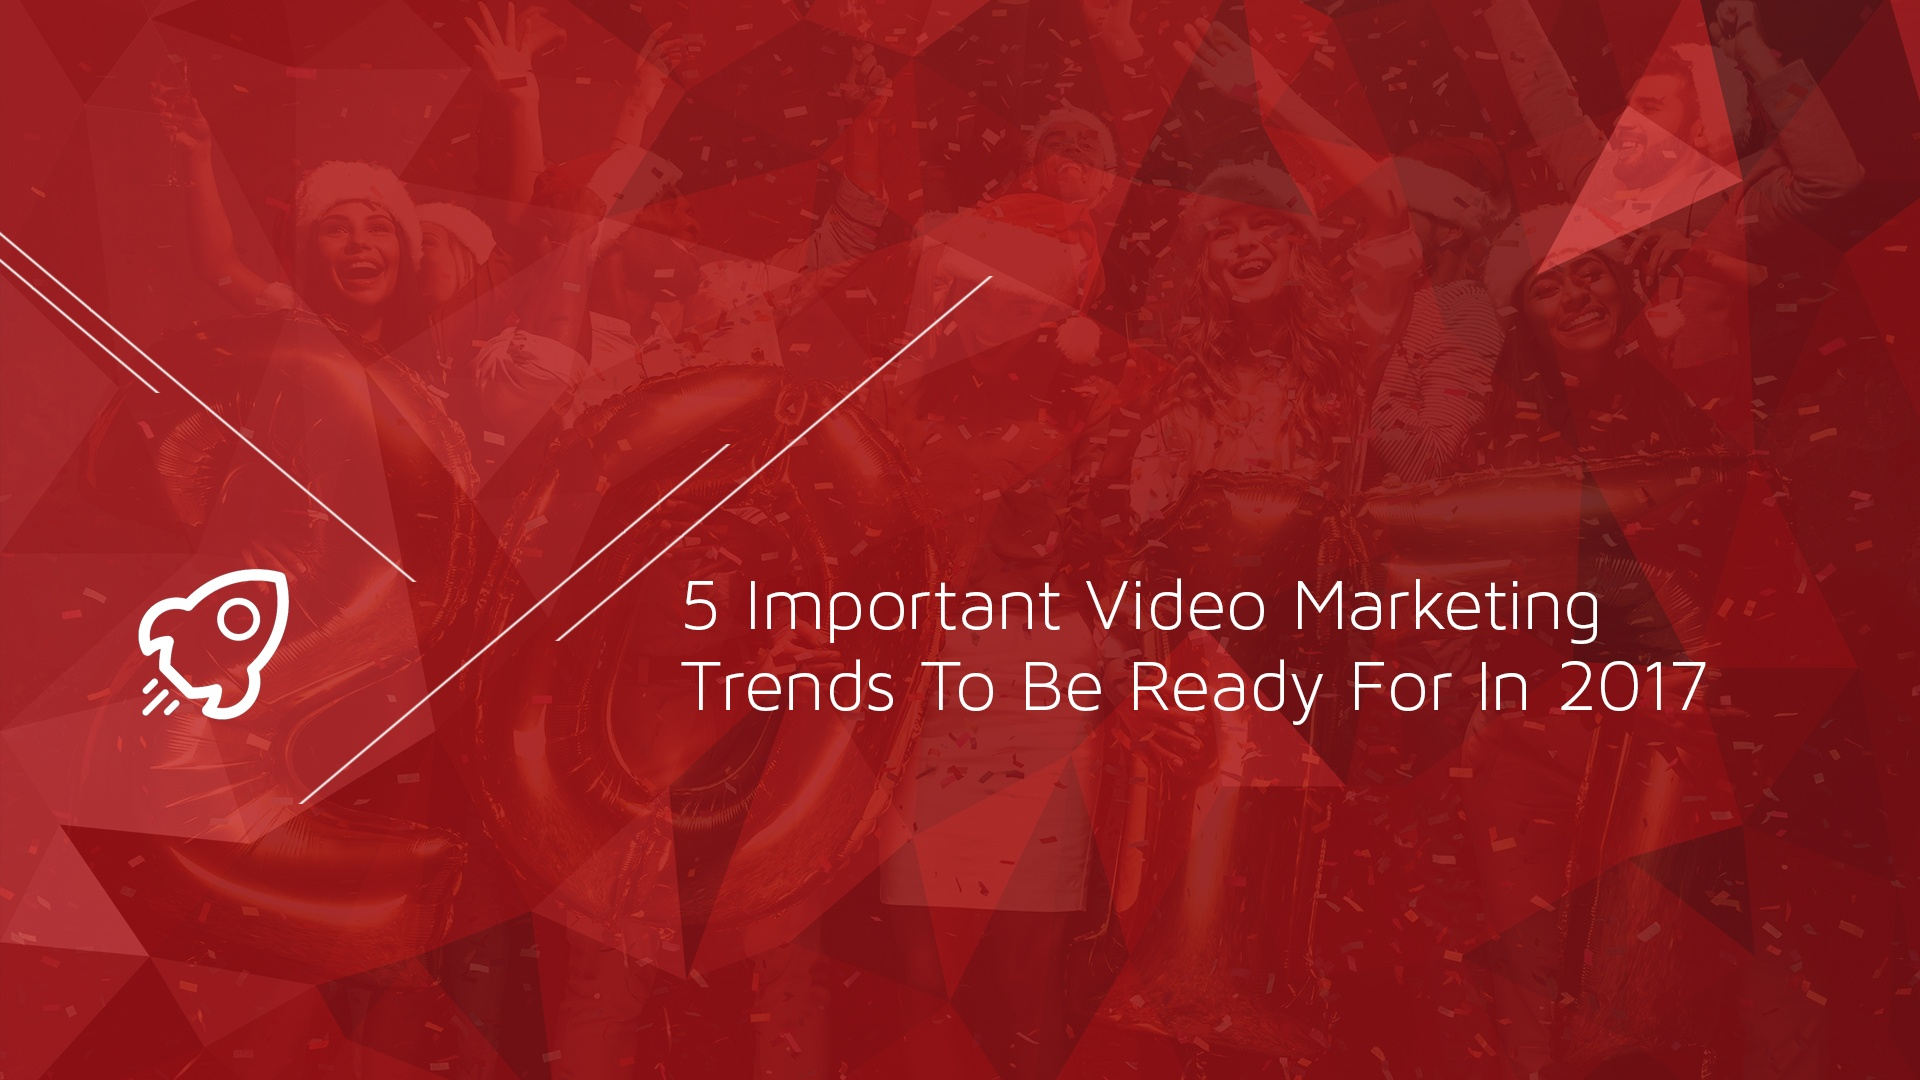 5 Important Video Marketing Trends to Be Ready for in 2017.jpg